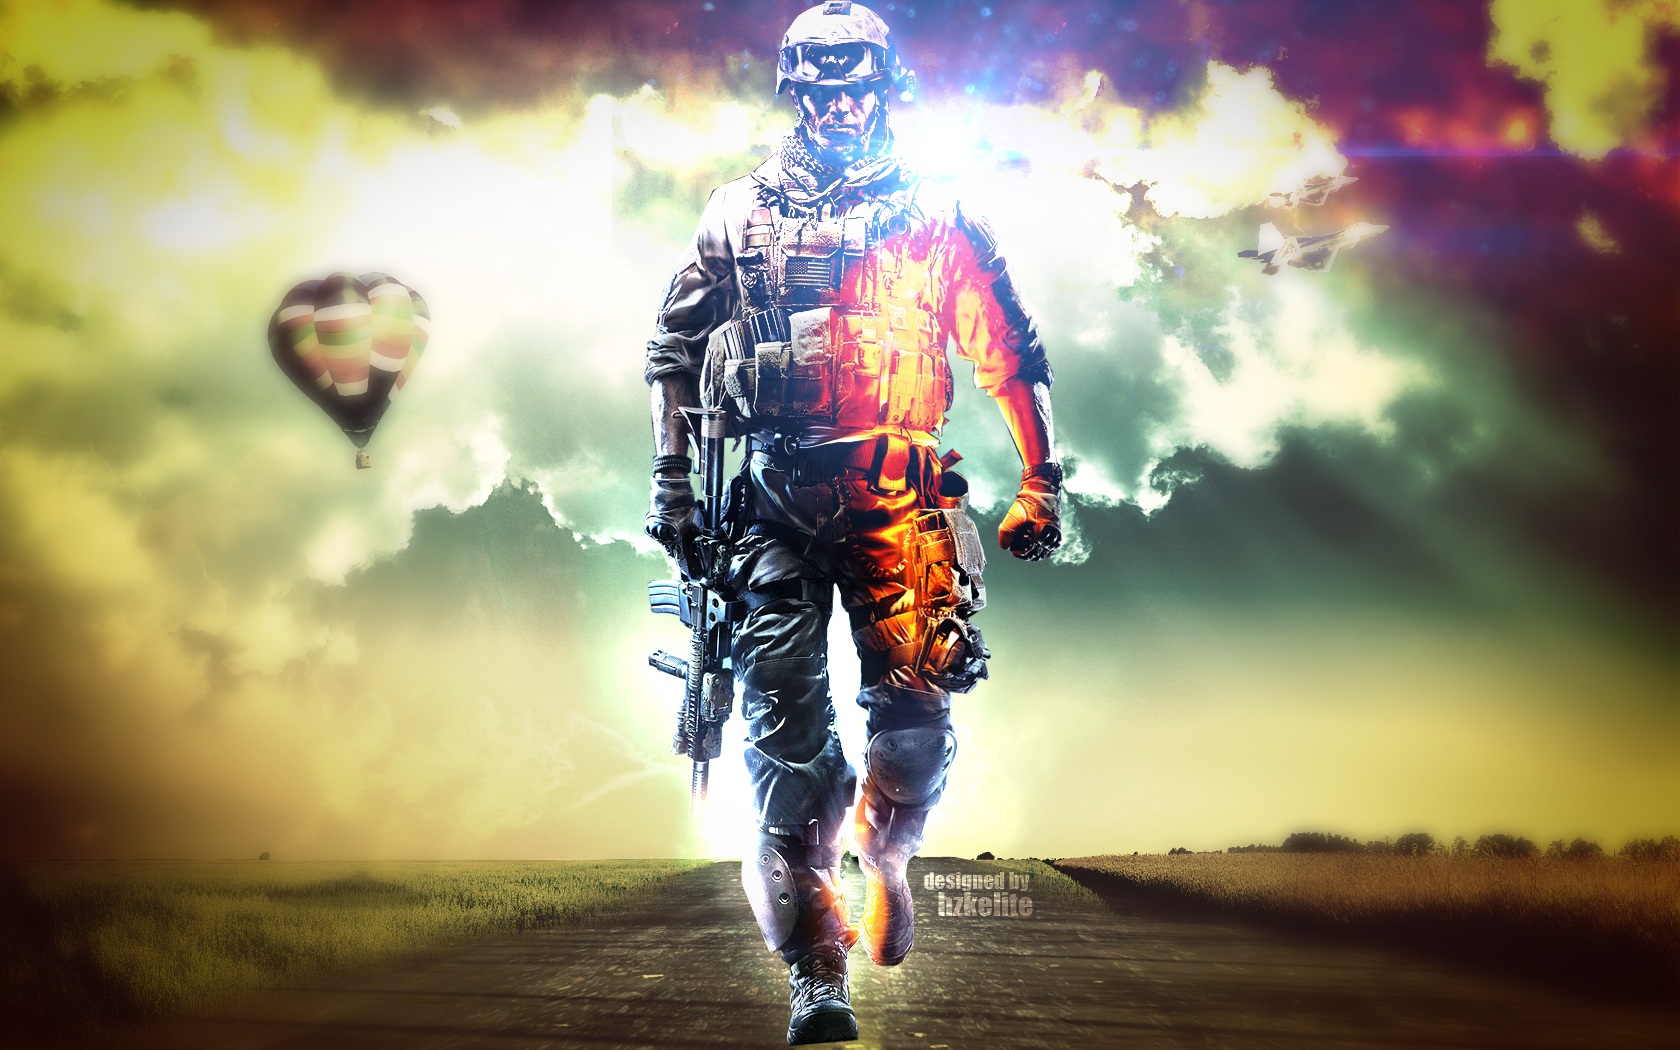 Download Wallpaper 1280x1280 Battlefield 4 Game Ea: Battlefield 3 Wallpaper Wallpaper And Background Image